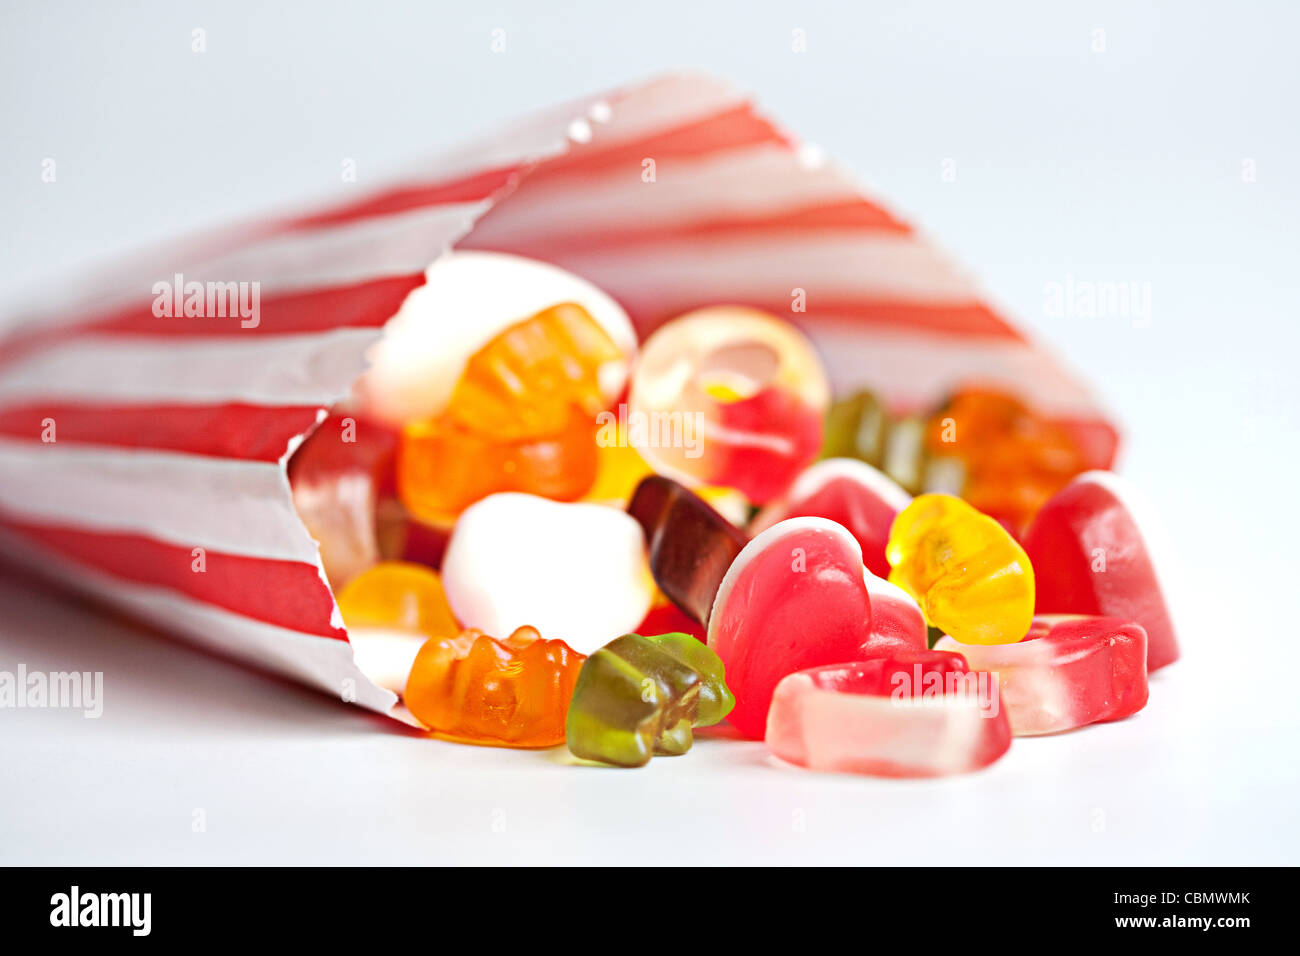 Jelly sweets spilling out of a red and white striped sweetie bag - Stock Image